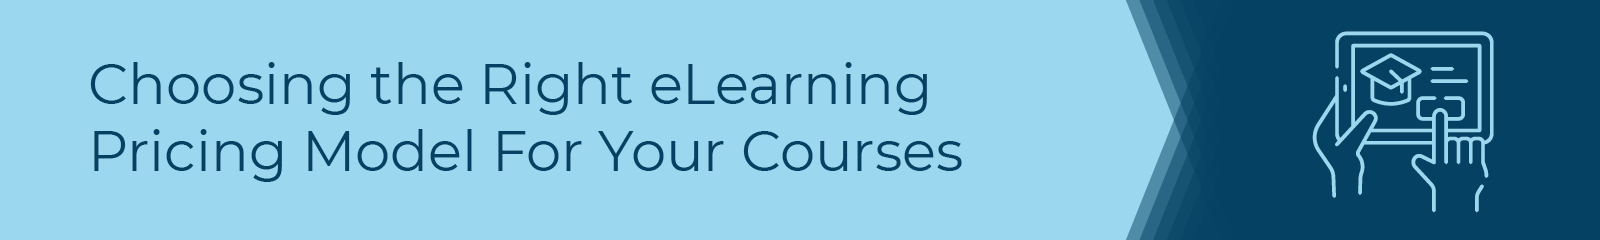 Here are tips to choose the right eLearning pricing model for your association.